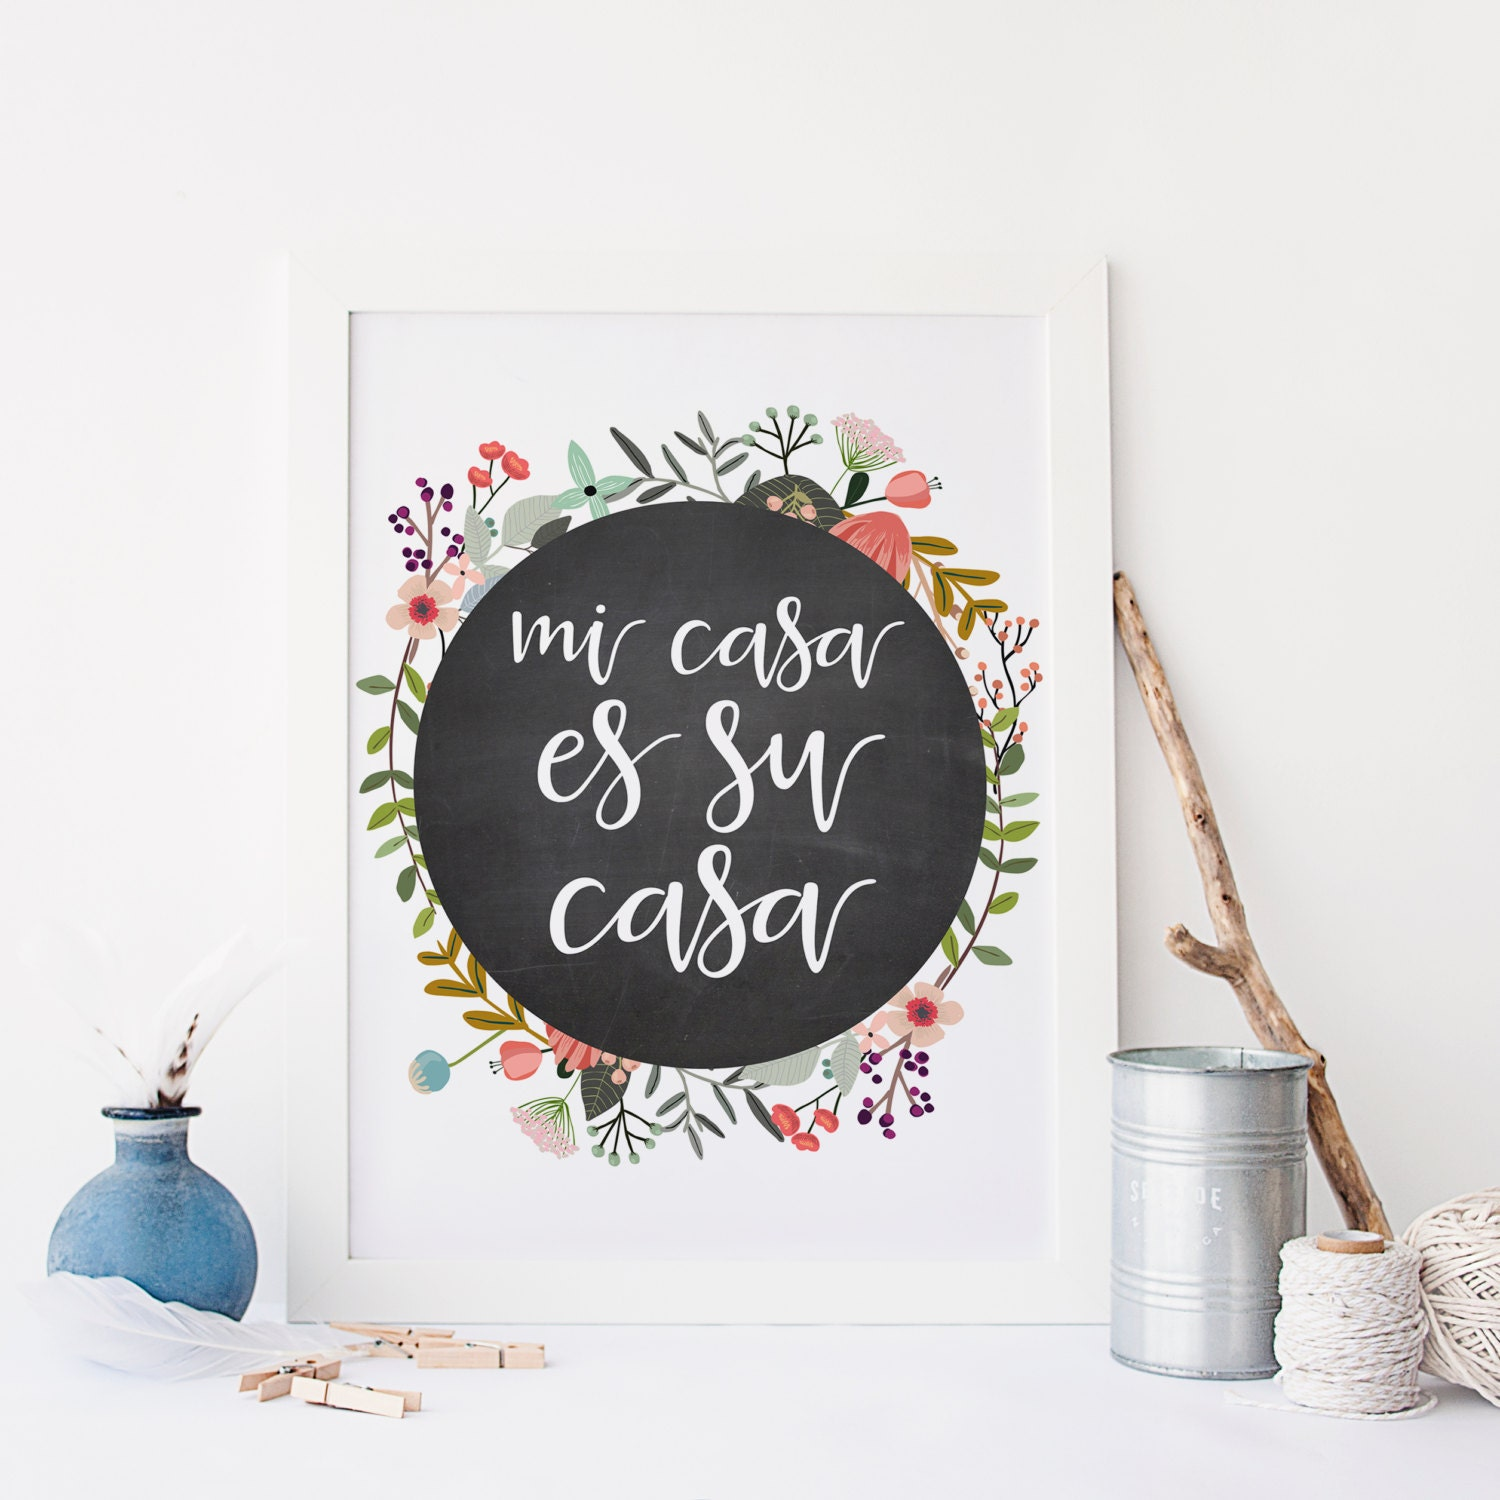 spanish quote printable art print 8x10 mi casa es su casa my. Black Bedroom Furniture Sets. Home Design Ideas